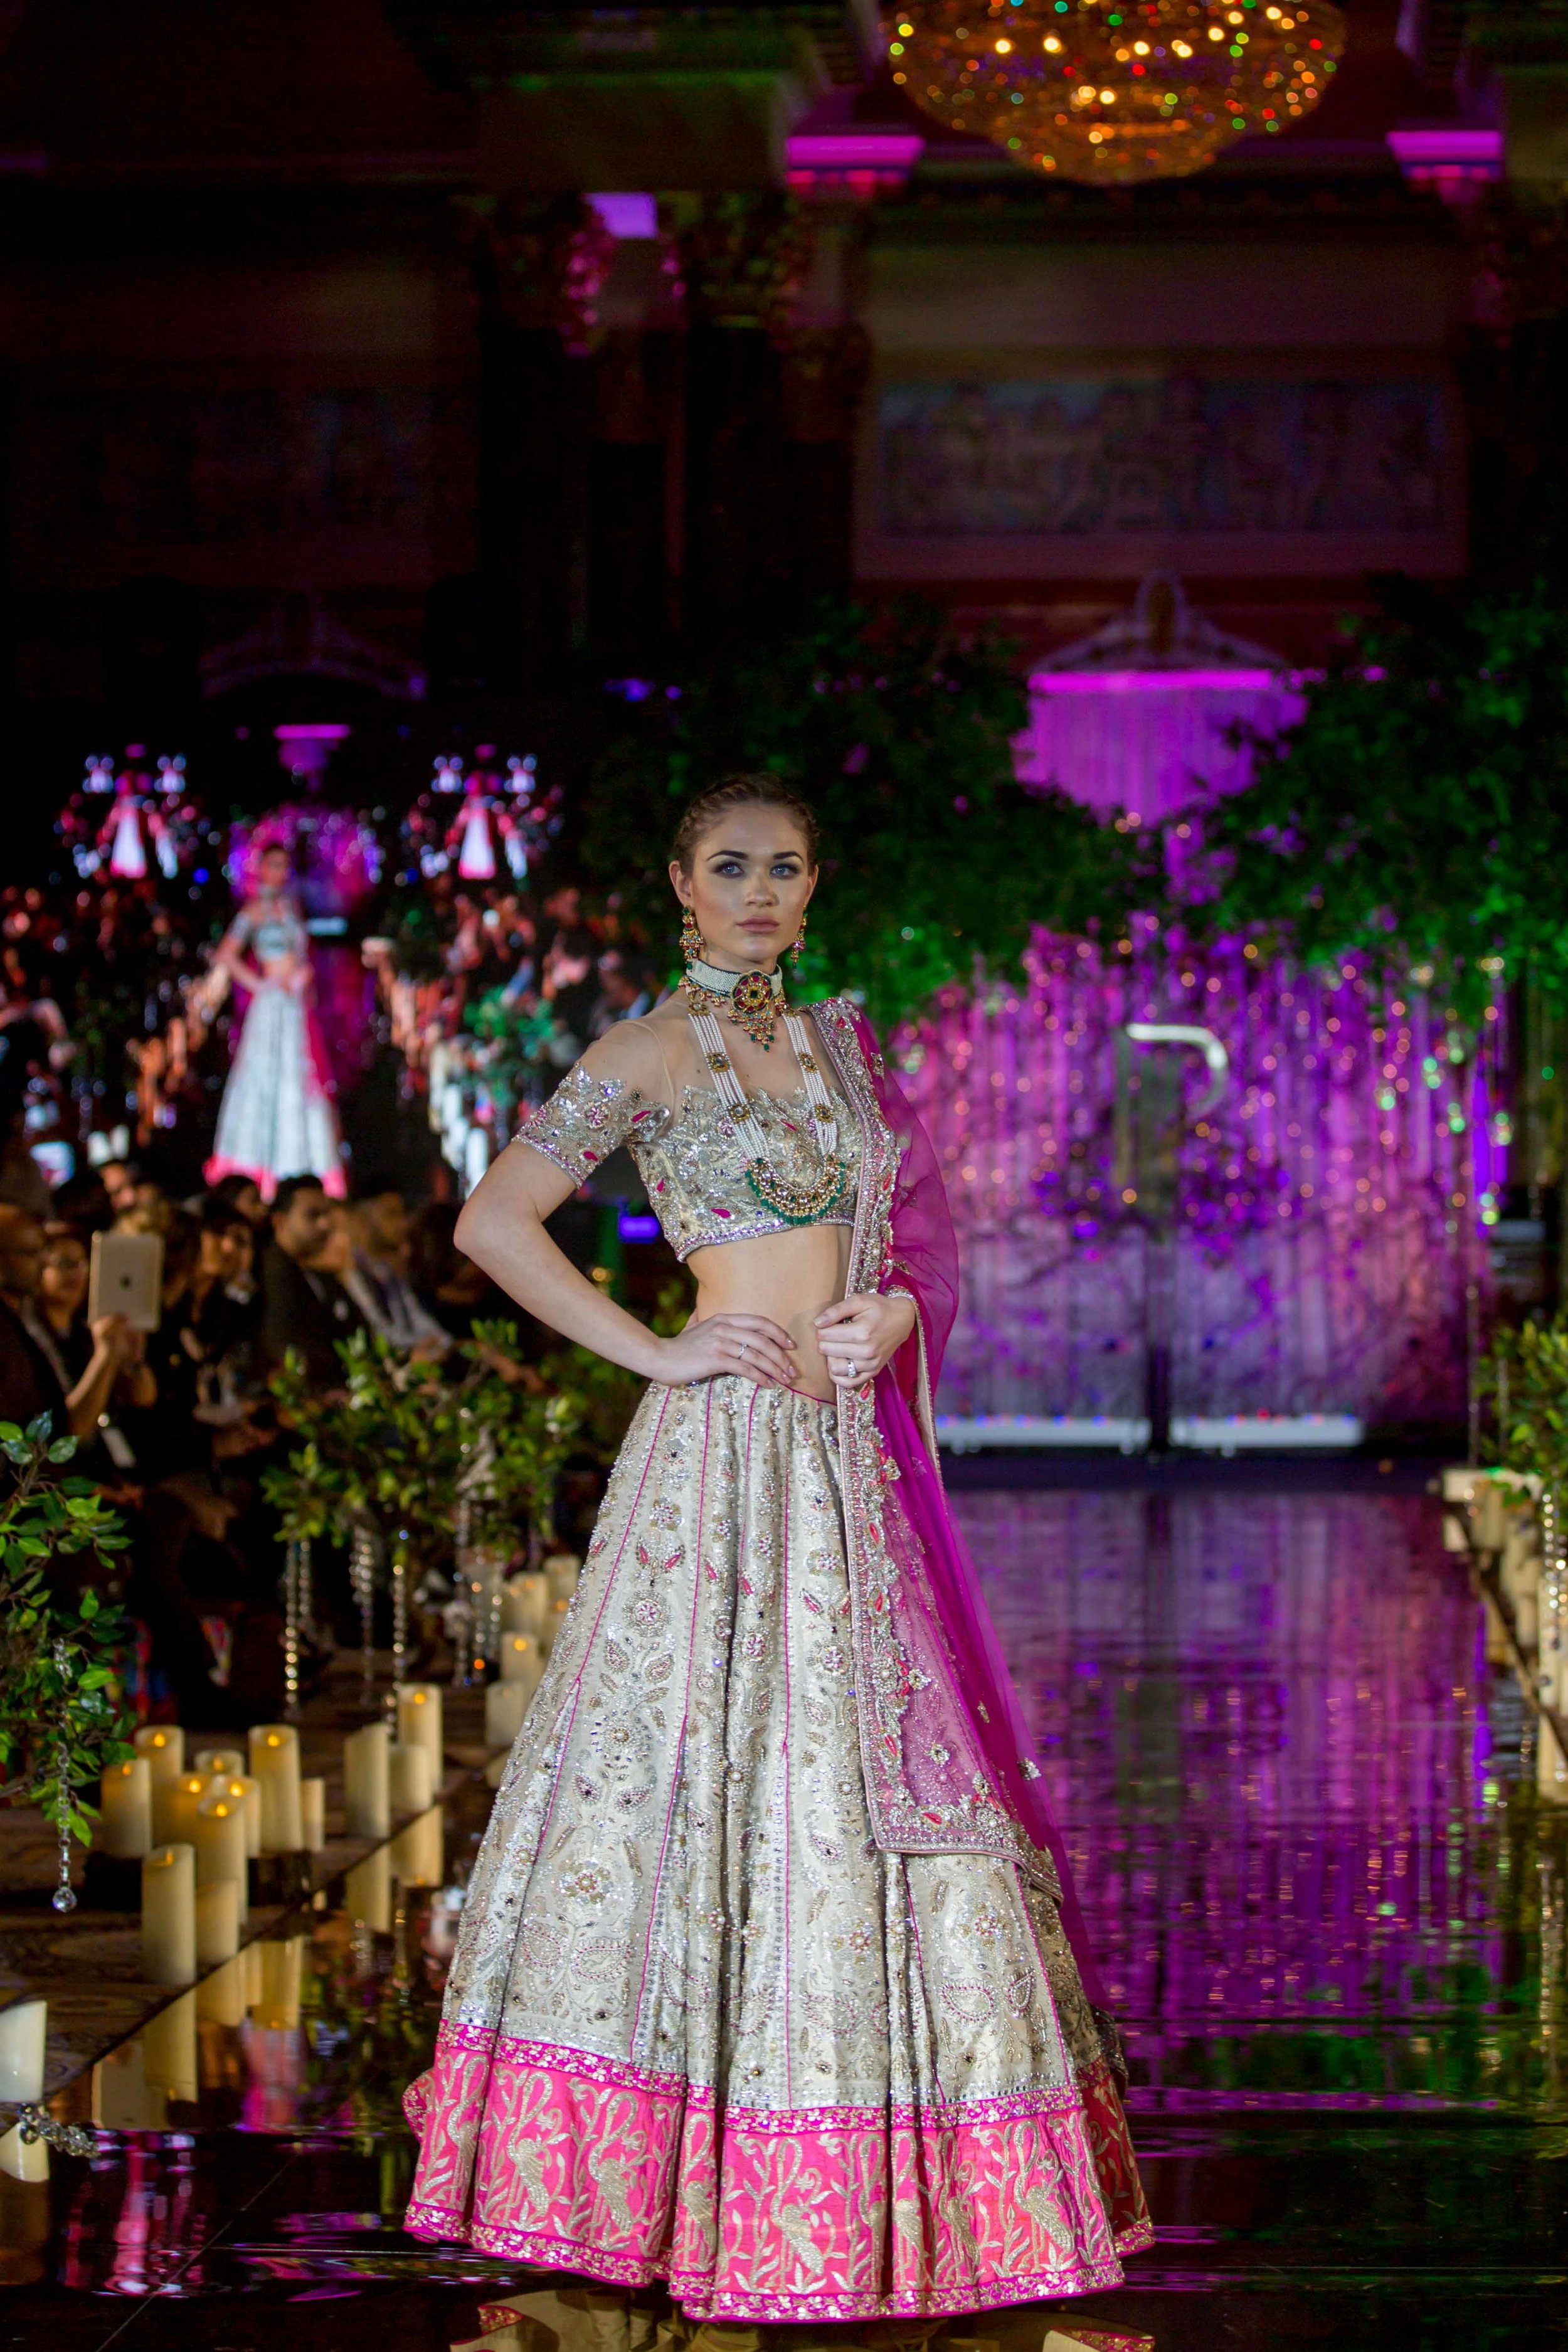 IPLF-IPL-Indian-Pakistani-London-Fashion-London-Week-catwalk-photographer-natalia-smith-photography-ekta-solanki-37.jpg